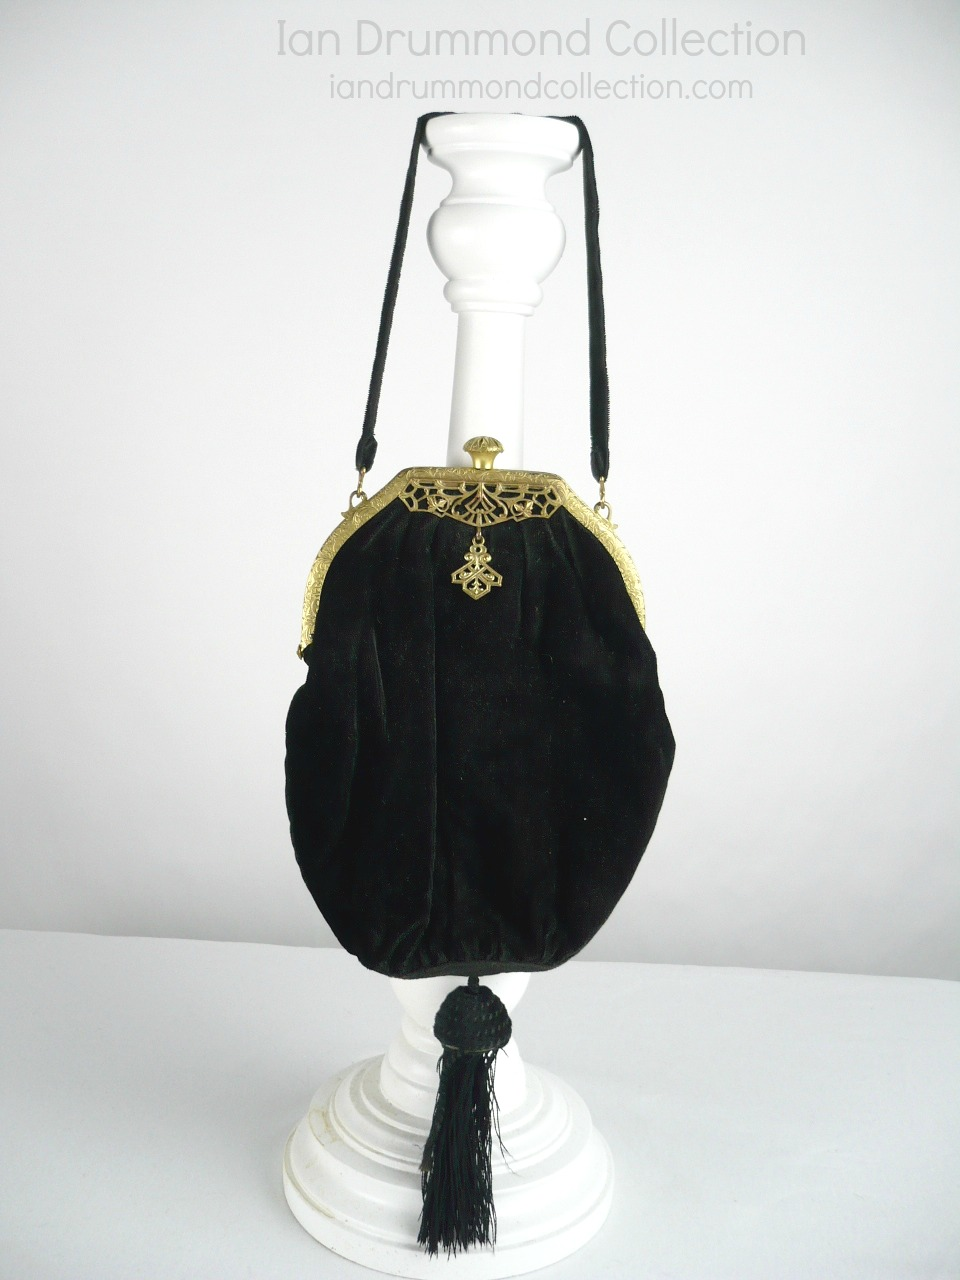 Ian Drummond Collection TV Movie Vintage Clothing Wardrobe Rental Toronto 1920s purse 3 (1)